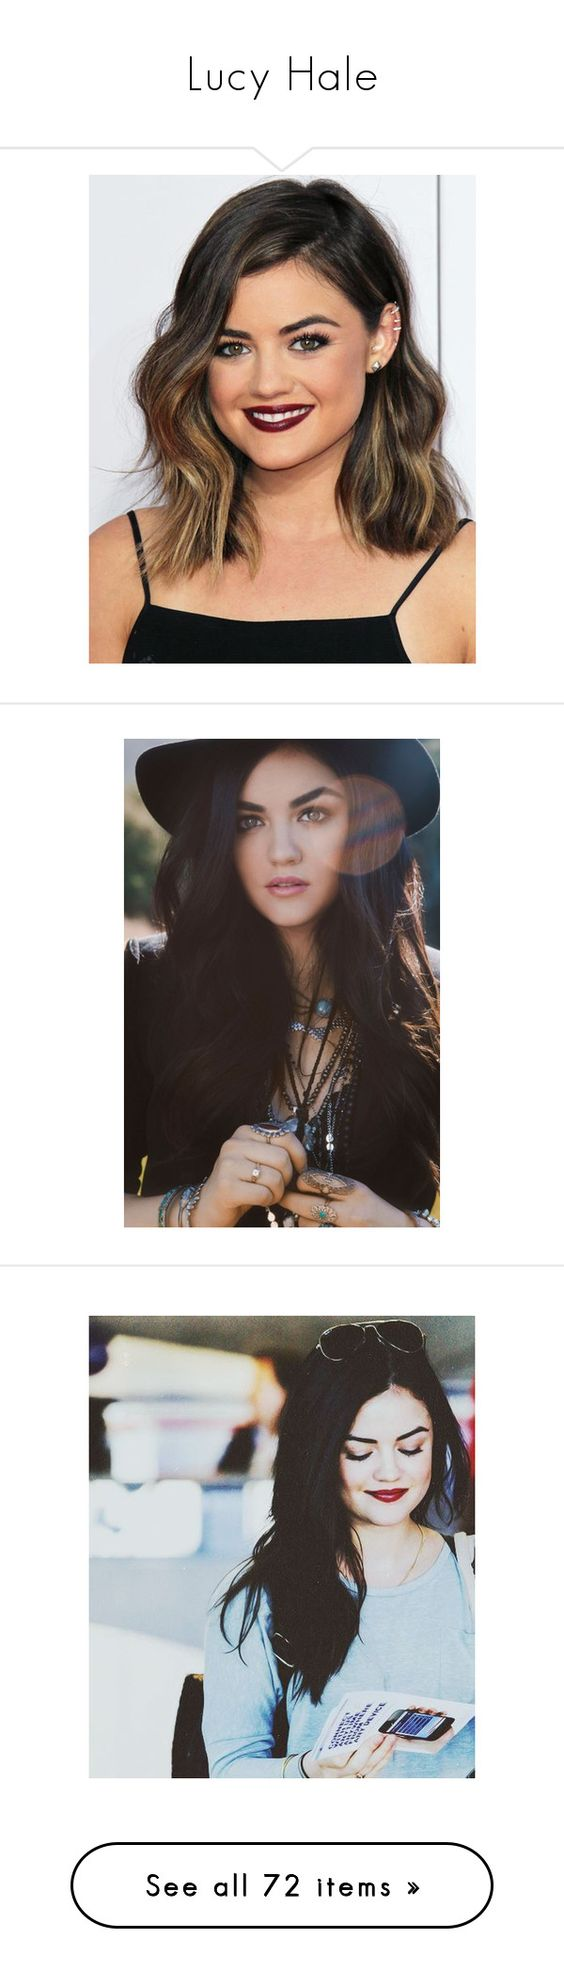 """Lucy Hale"" by agentepevensie ❤ liked on Polyvore featuring lucy hale, hair, cabelos, girls, people, pictures, backgrounds, outfits, lucy and pretty little liars"